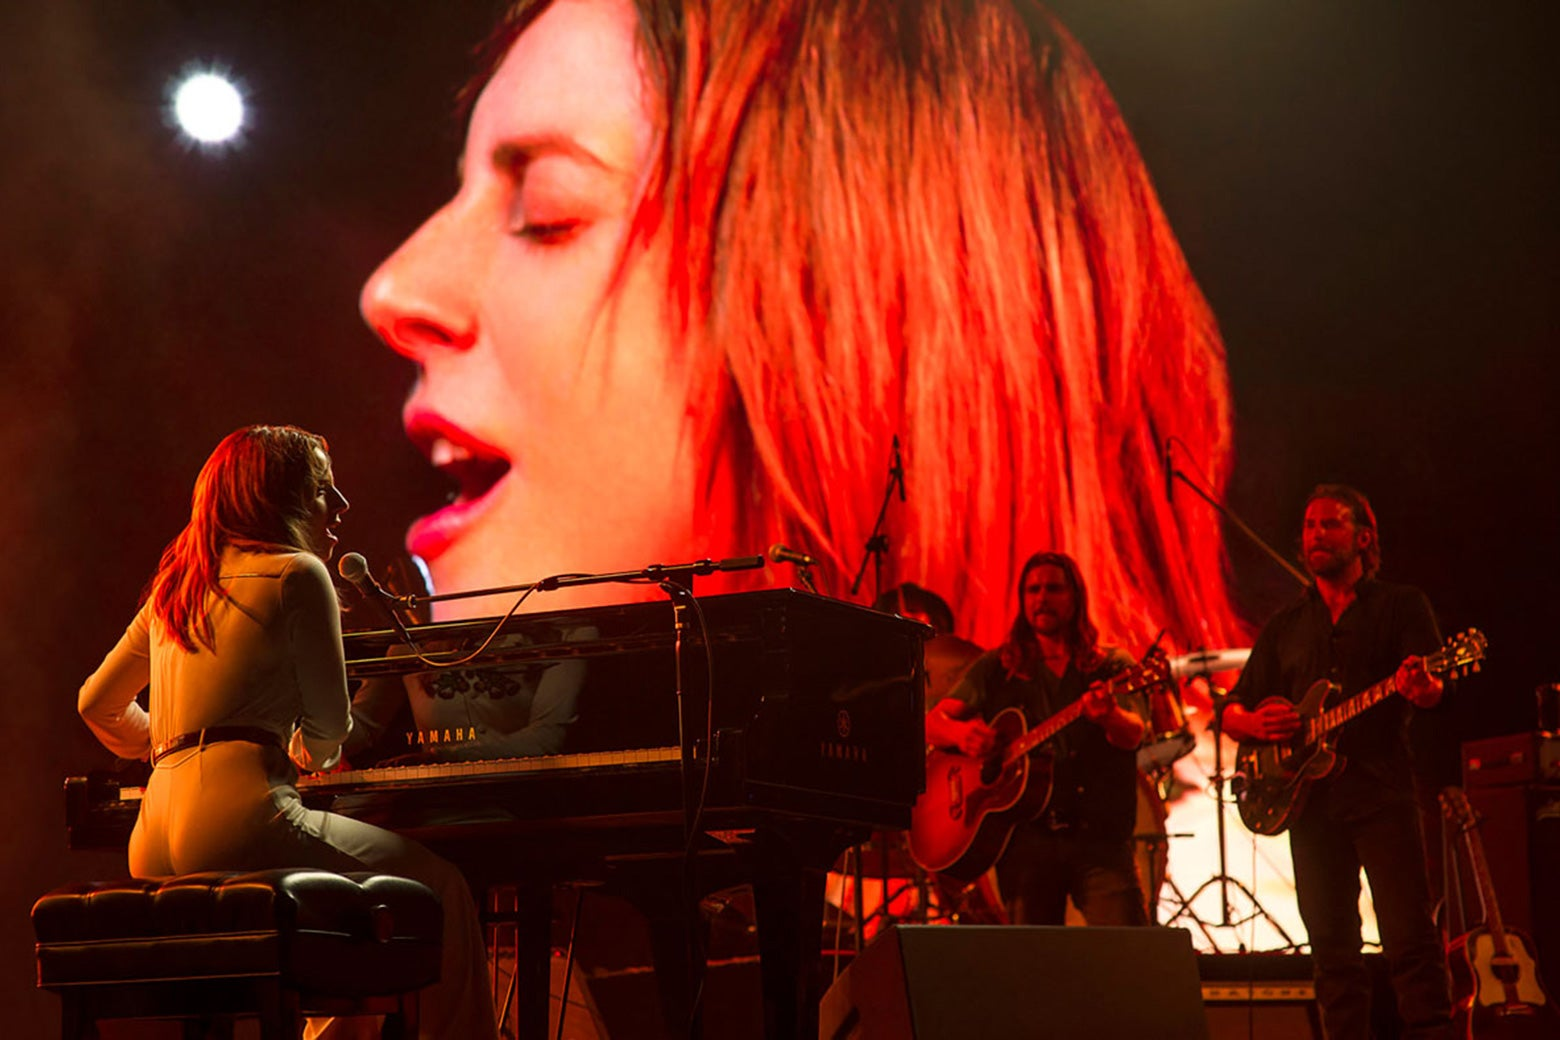 Lady Gaga at the piano and Bradley Cooper on guitar, performing on stage in A Star Is Born.